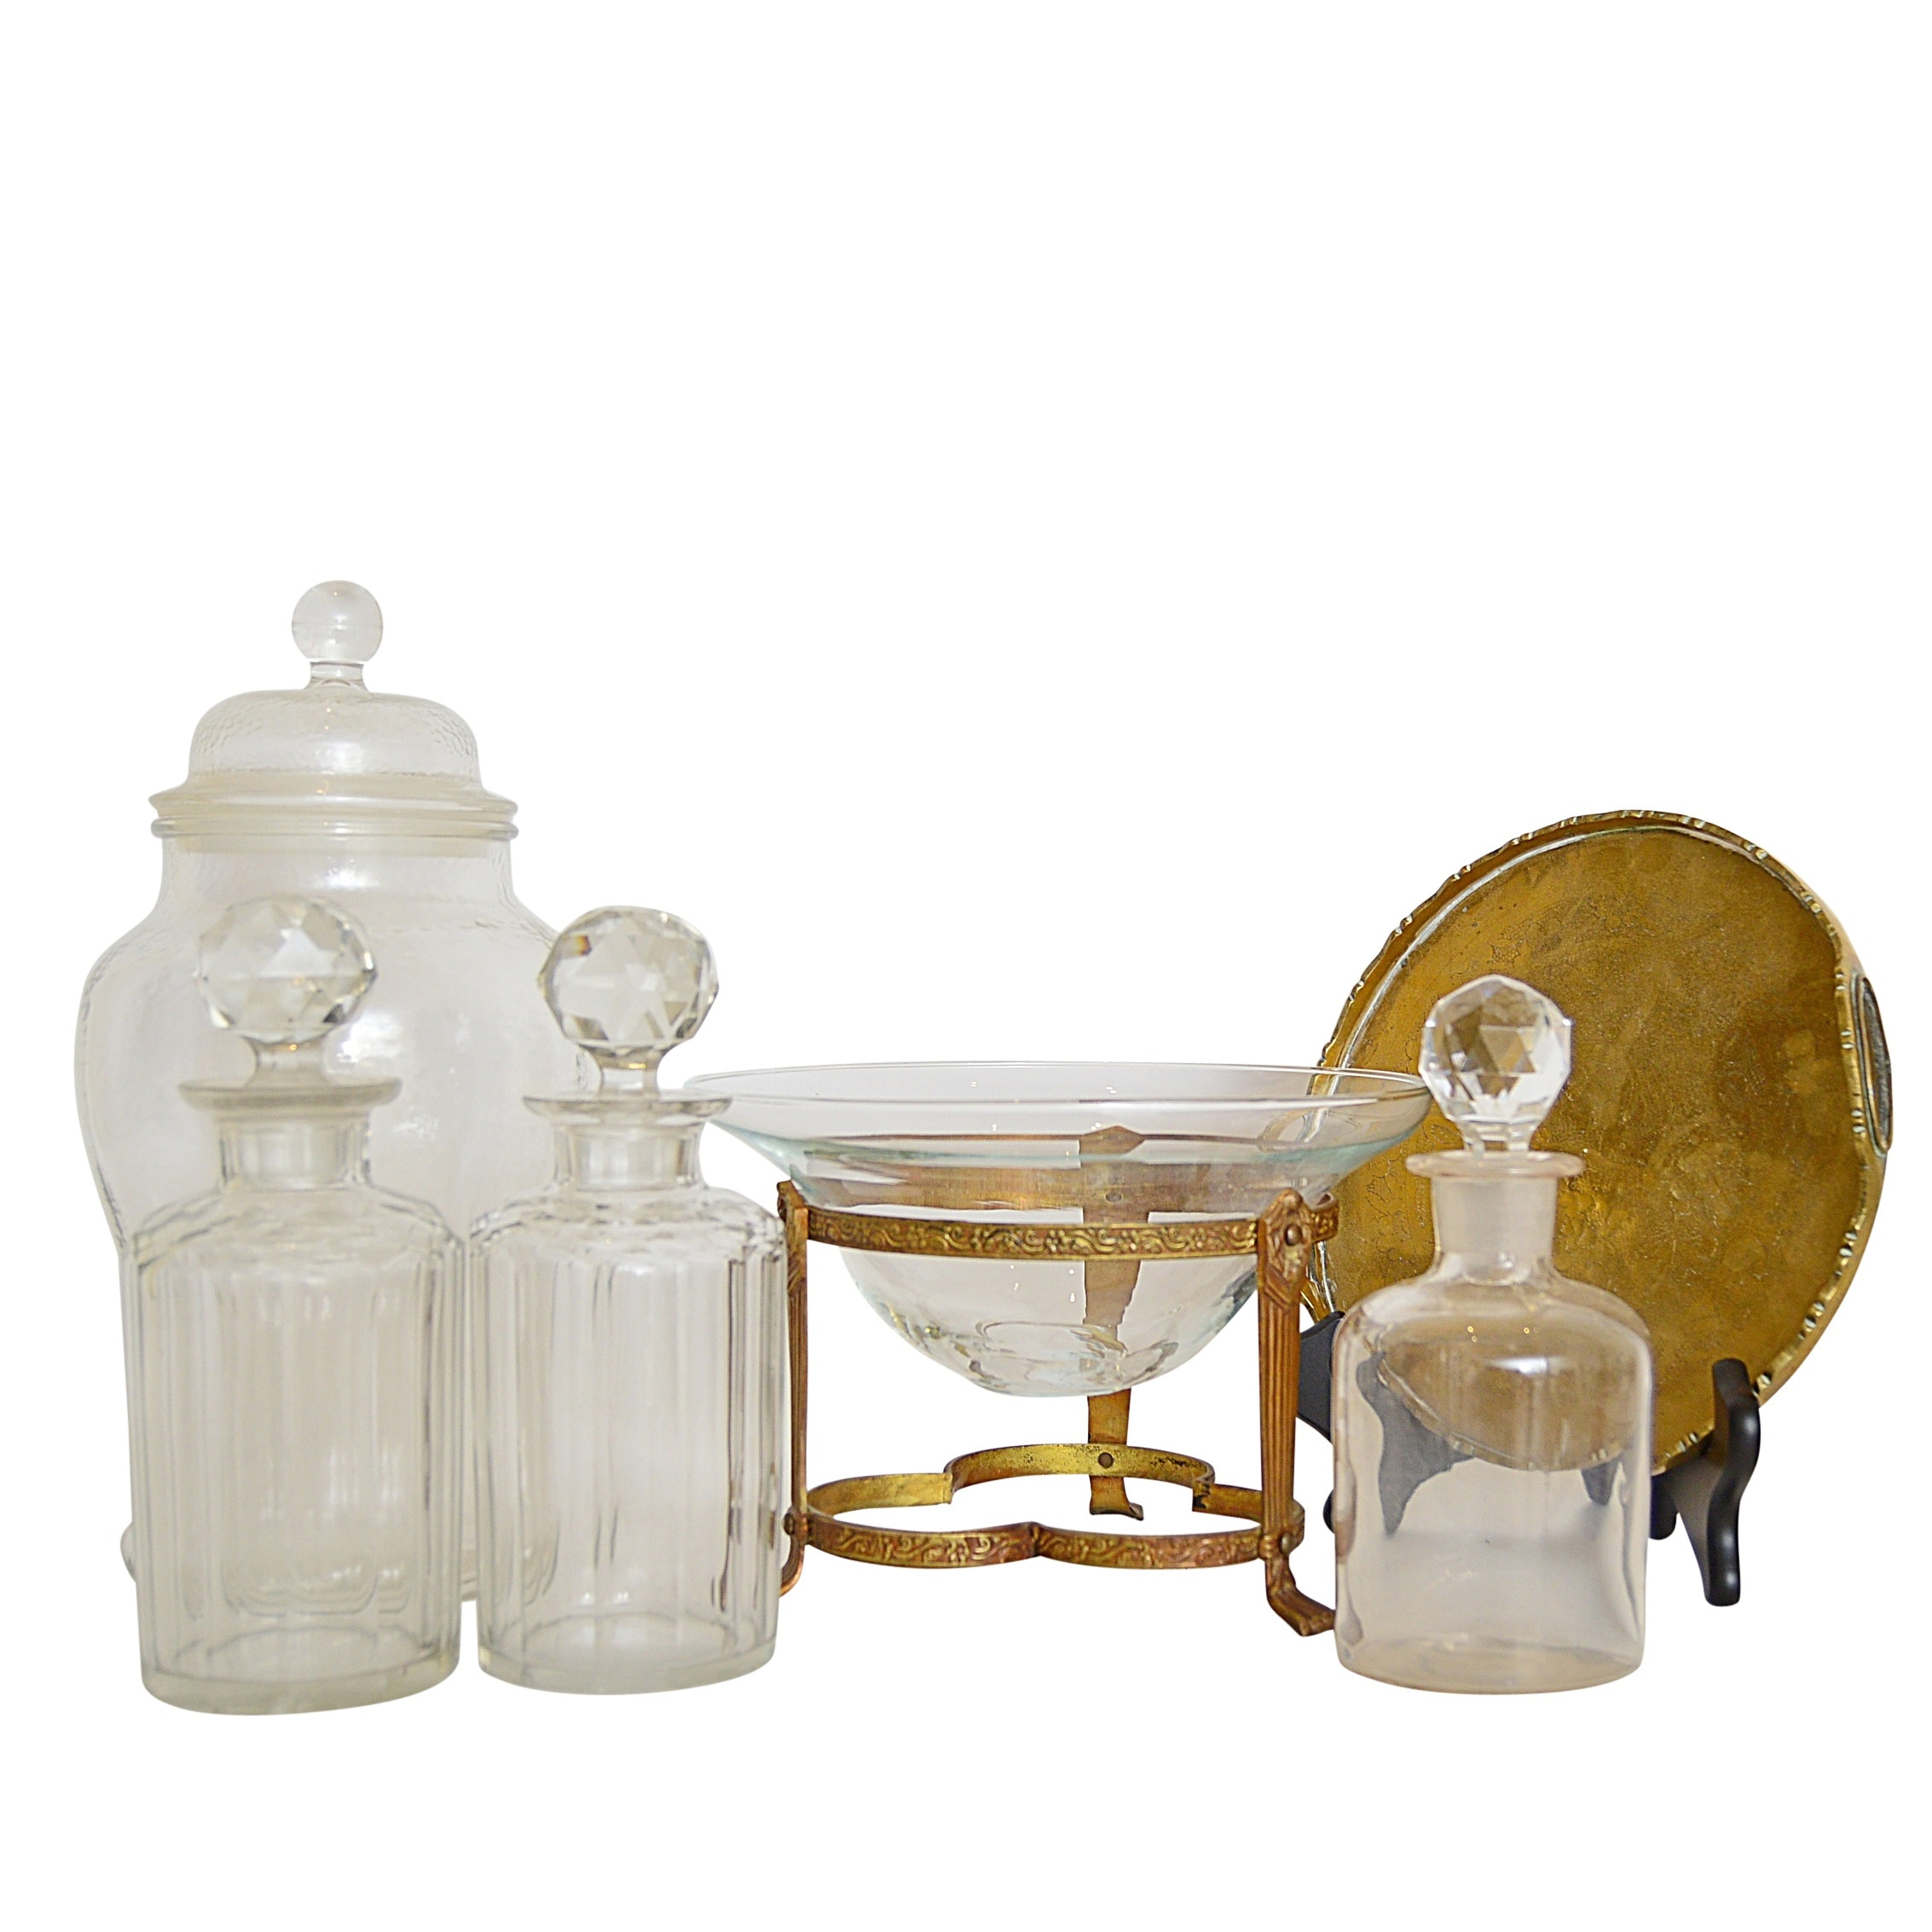 Vintage Glassware with Brass Tray